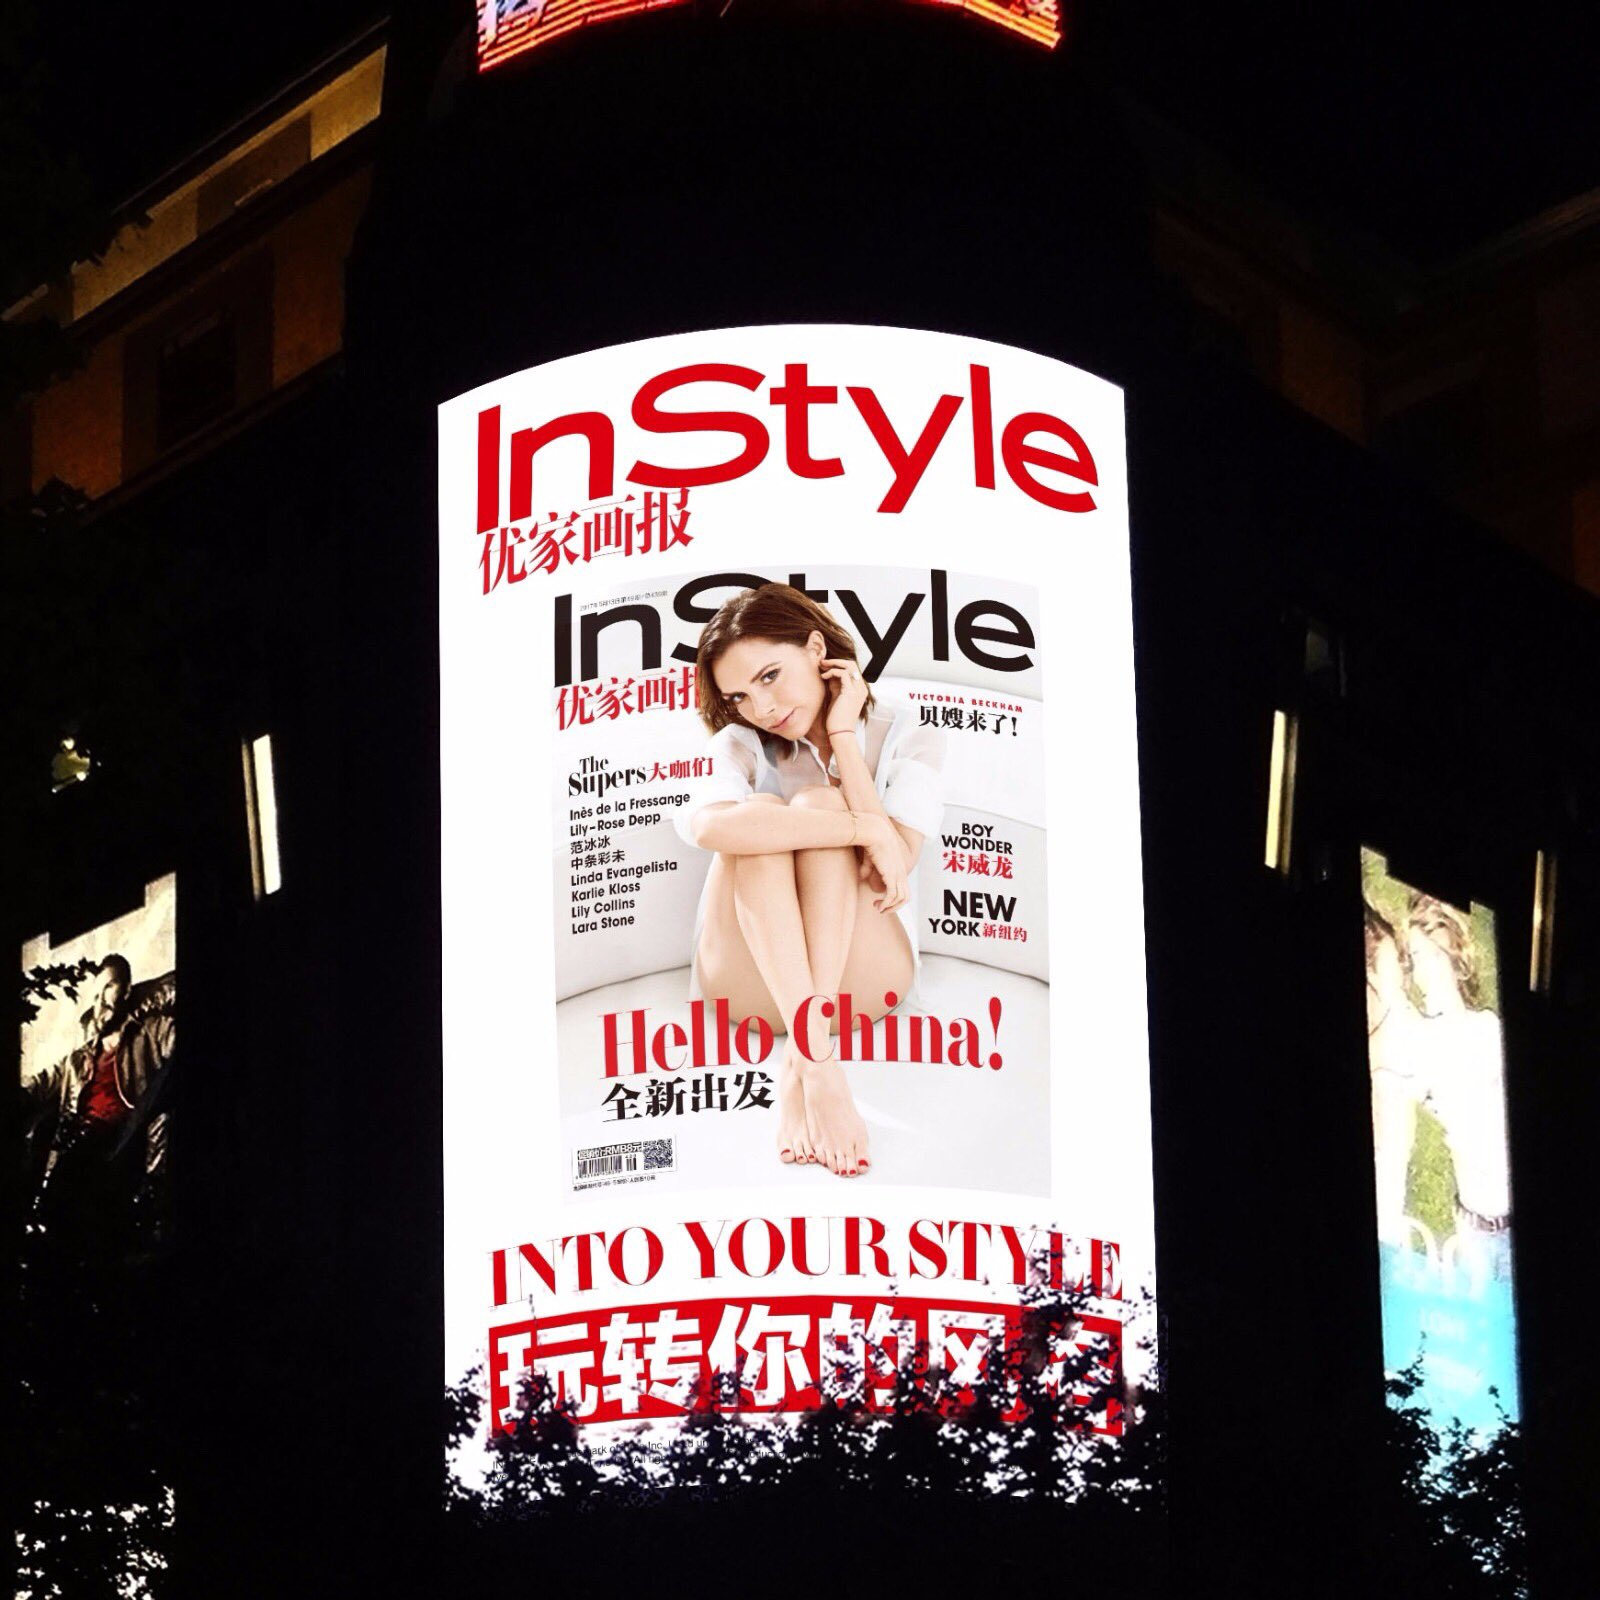 Hello InStyle China! Thank you Shanghai, you've been amazing. Next stop Beijing! x VB https://t.co/kVG6FHhGNa